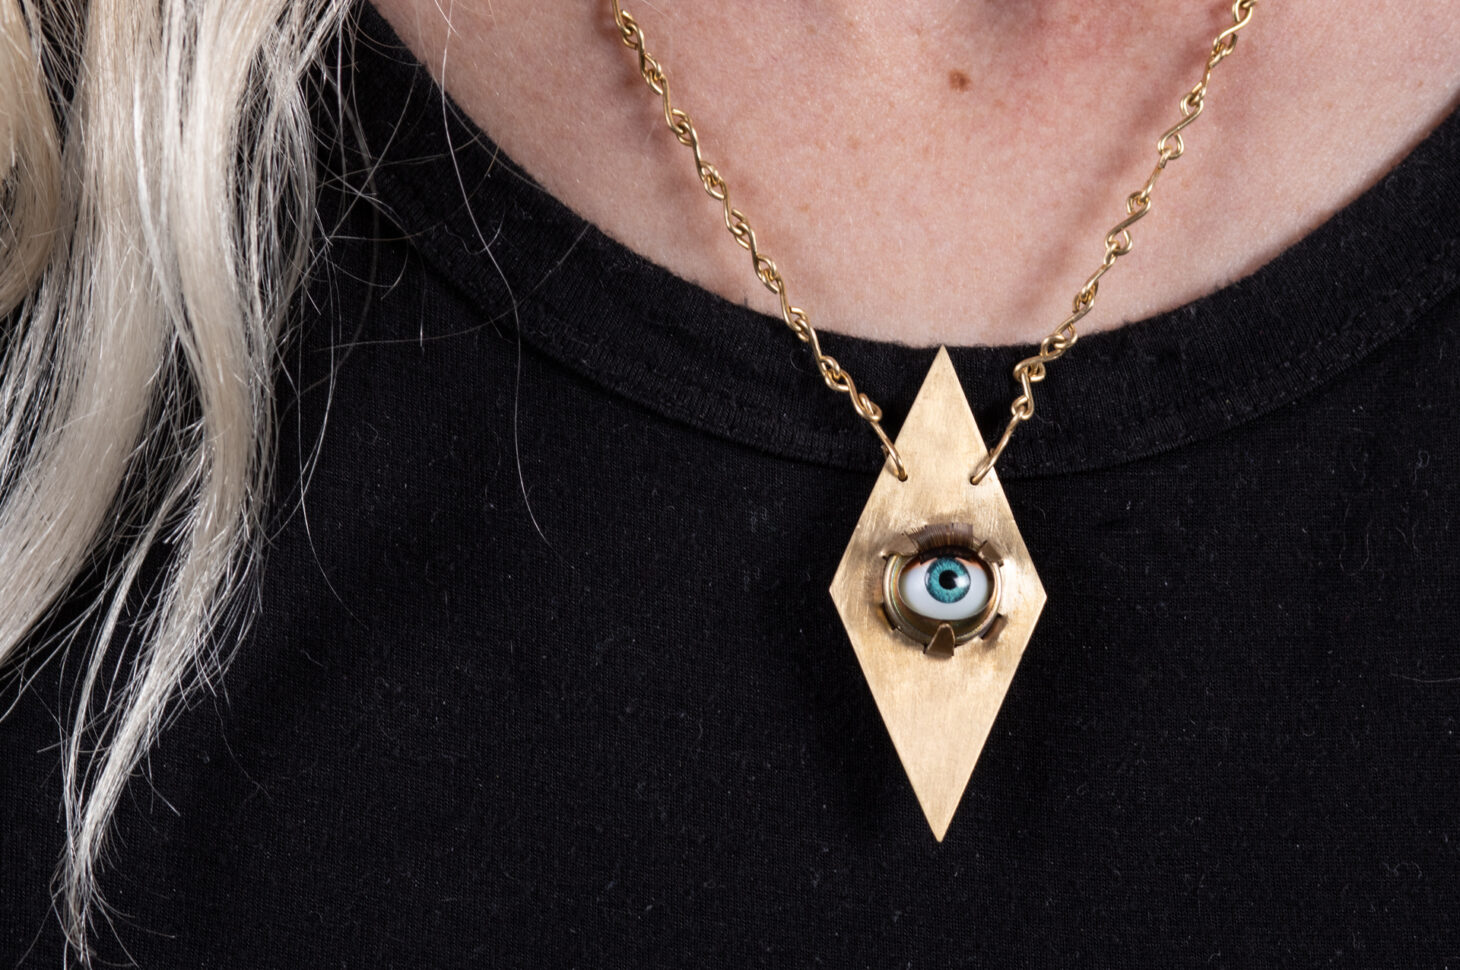 NMSU art students create one-of-a-kind jewelry for annual sale